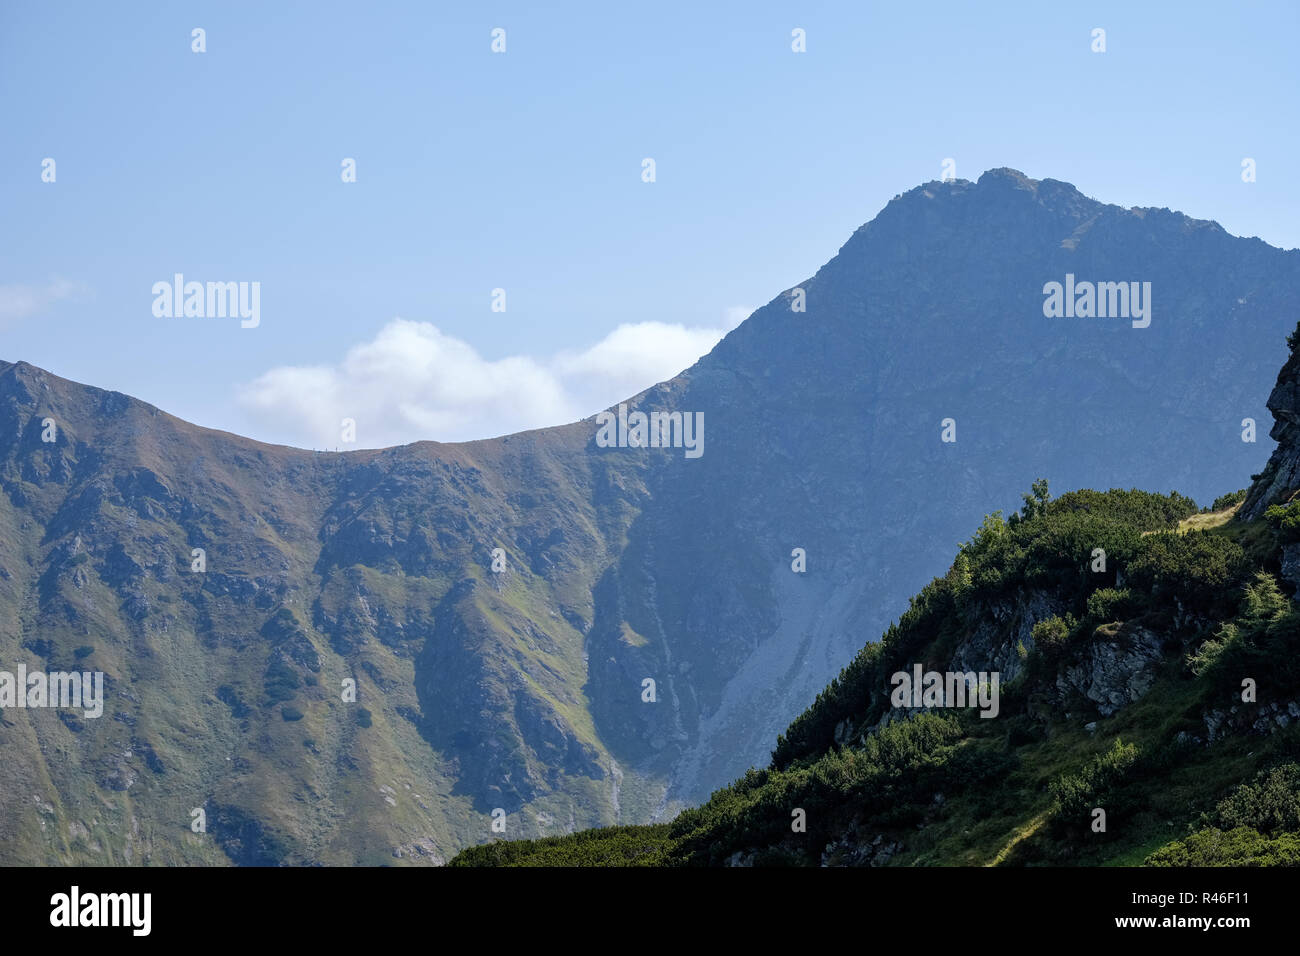 Distant mountain cores in mist in slovakia Tatra mountain trails in clear autumn day with blue sky and green vegetation - Stock Image